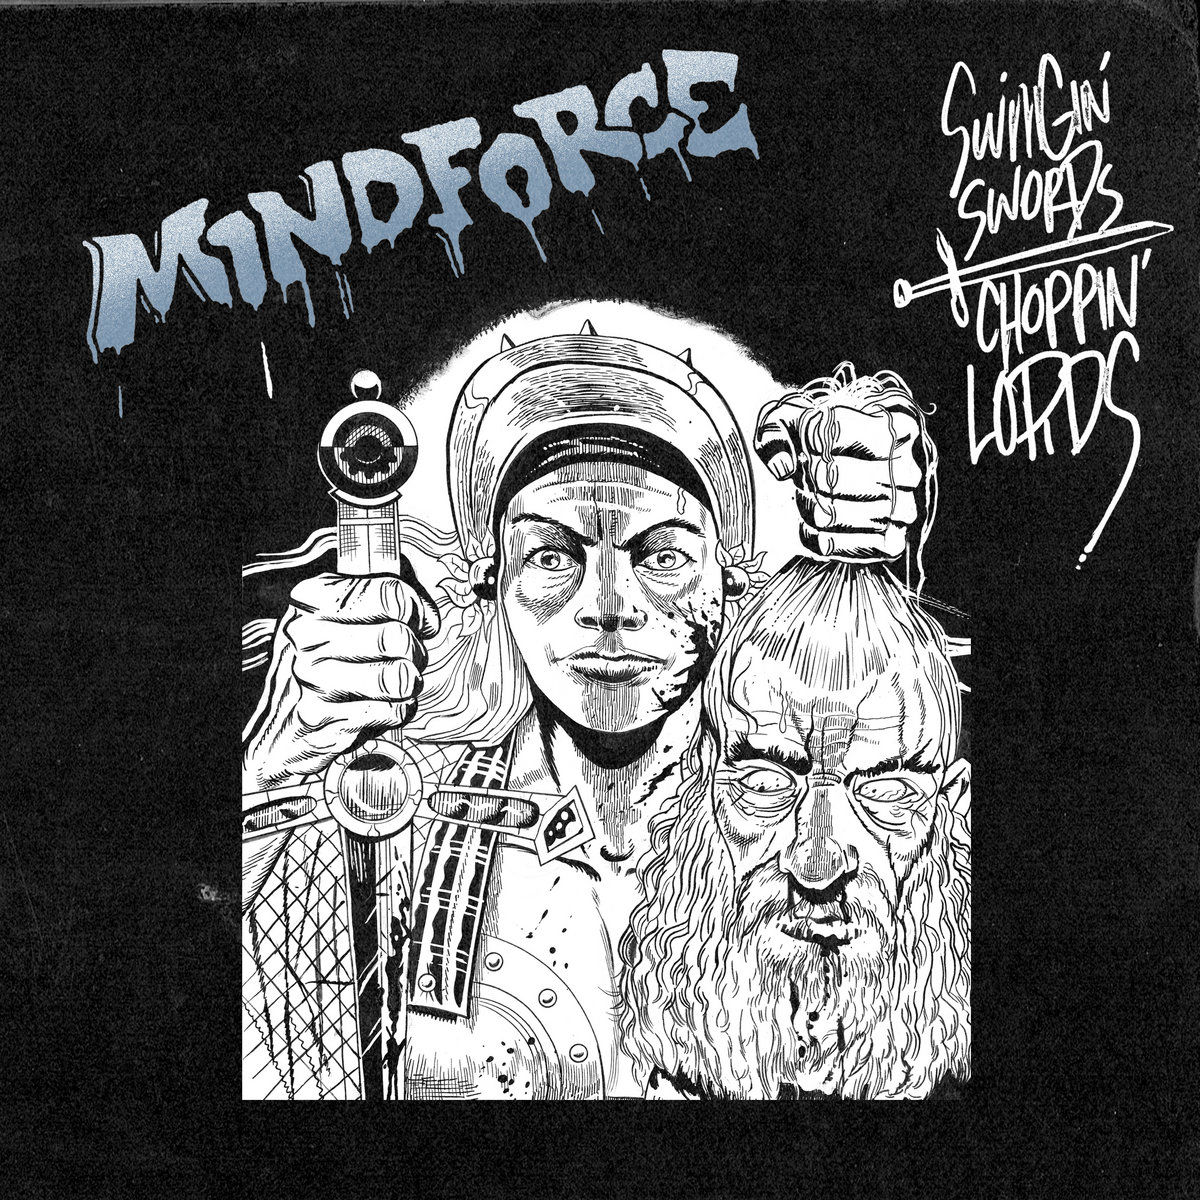 Mindforce - Swingin' Swords, Choppin' Lords